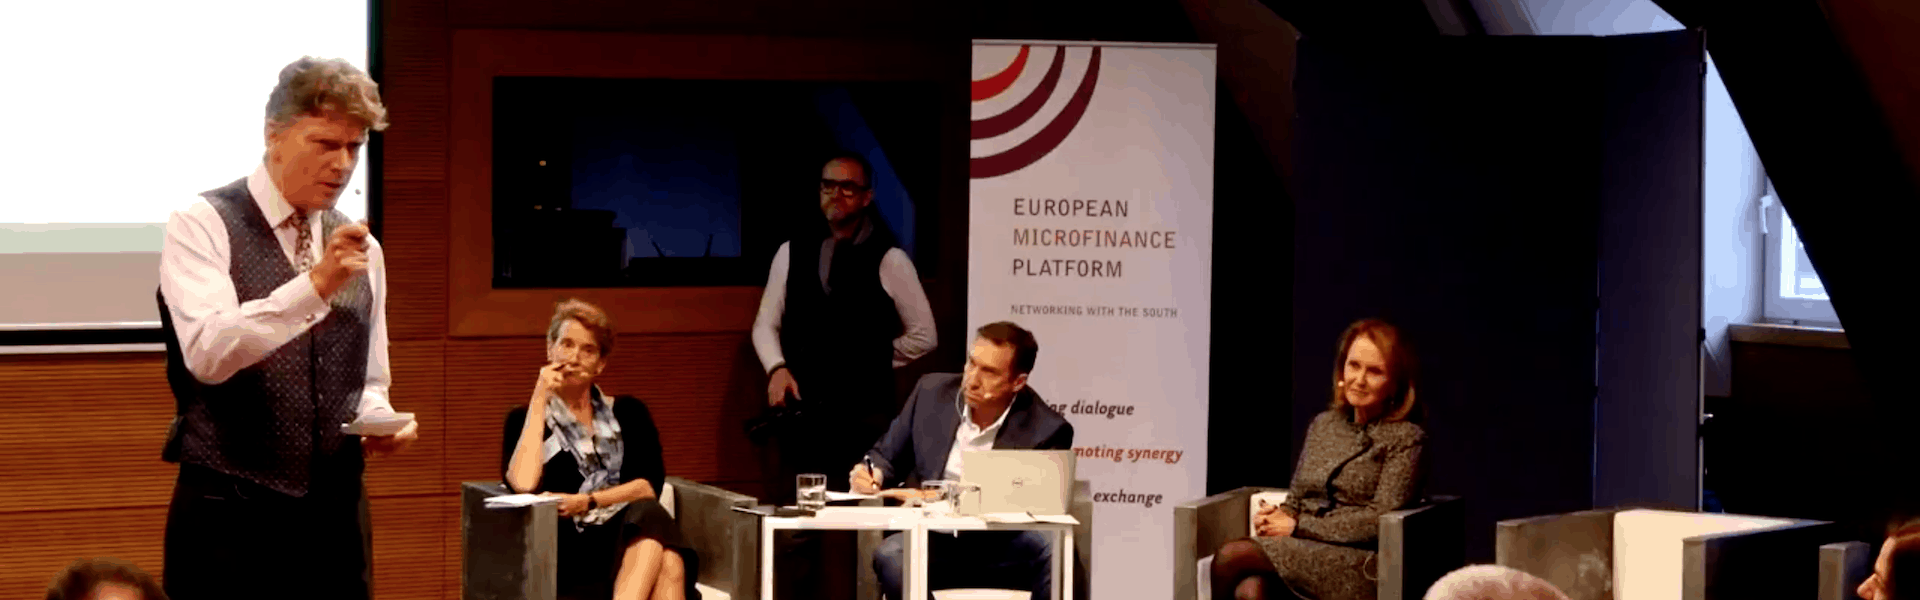 Watch Video of the Live Debate: 'Digital finance: Full inclusion or empty promise?', on NextBillion.net